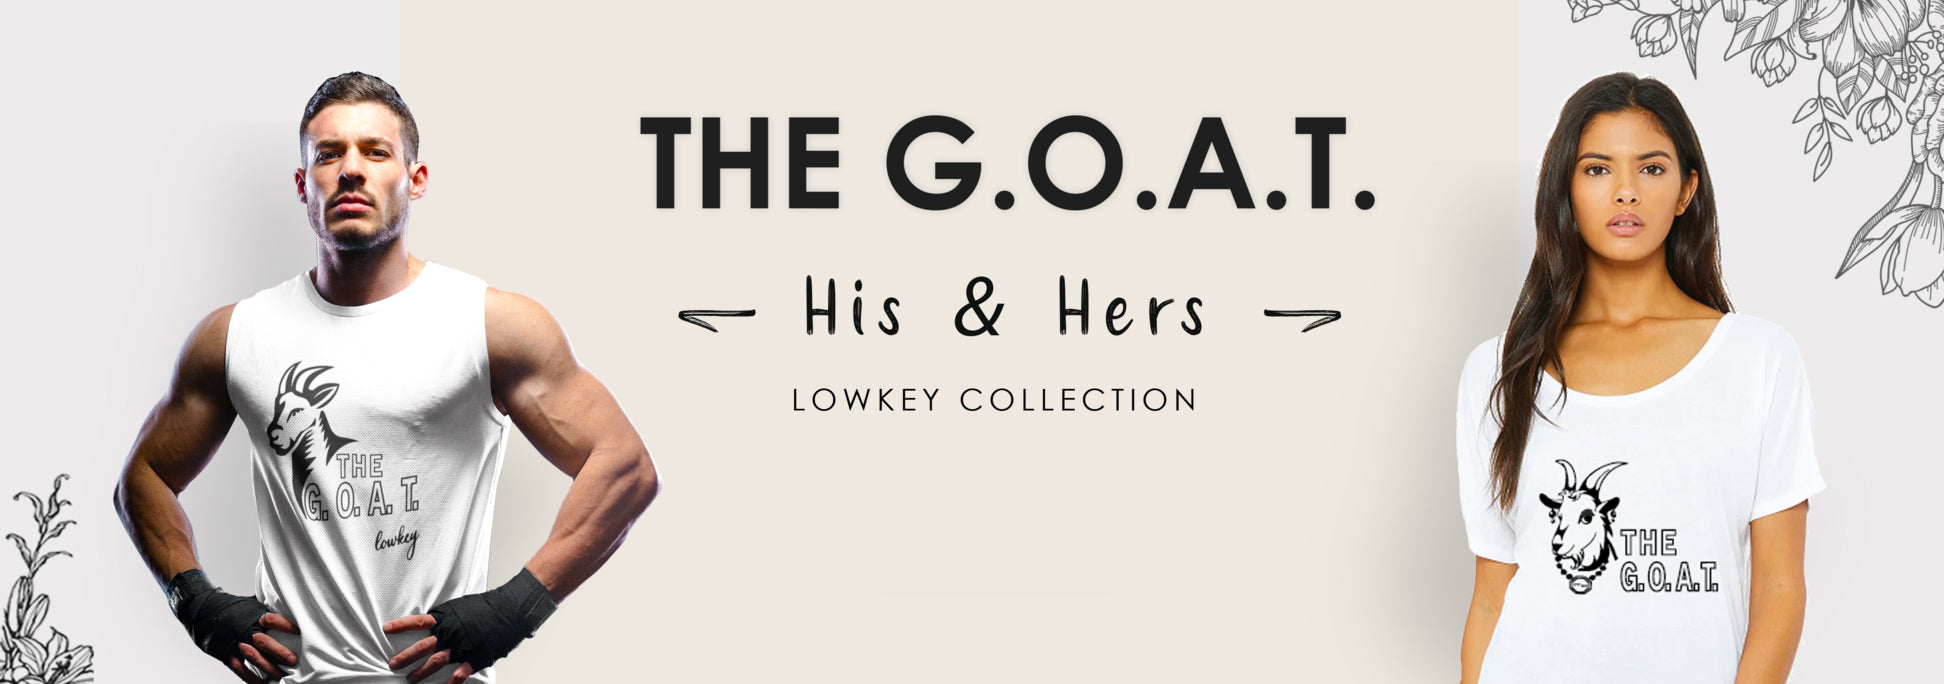 The G.O.A.T. Collection sold by LowKey USA